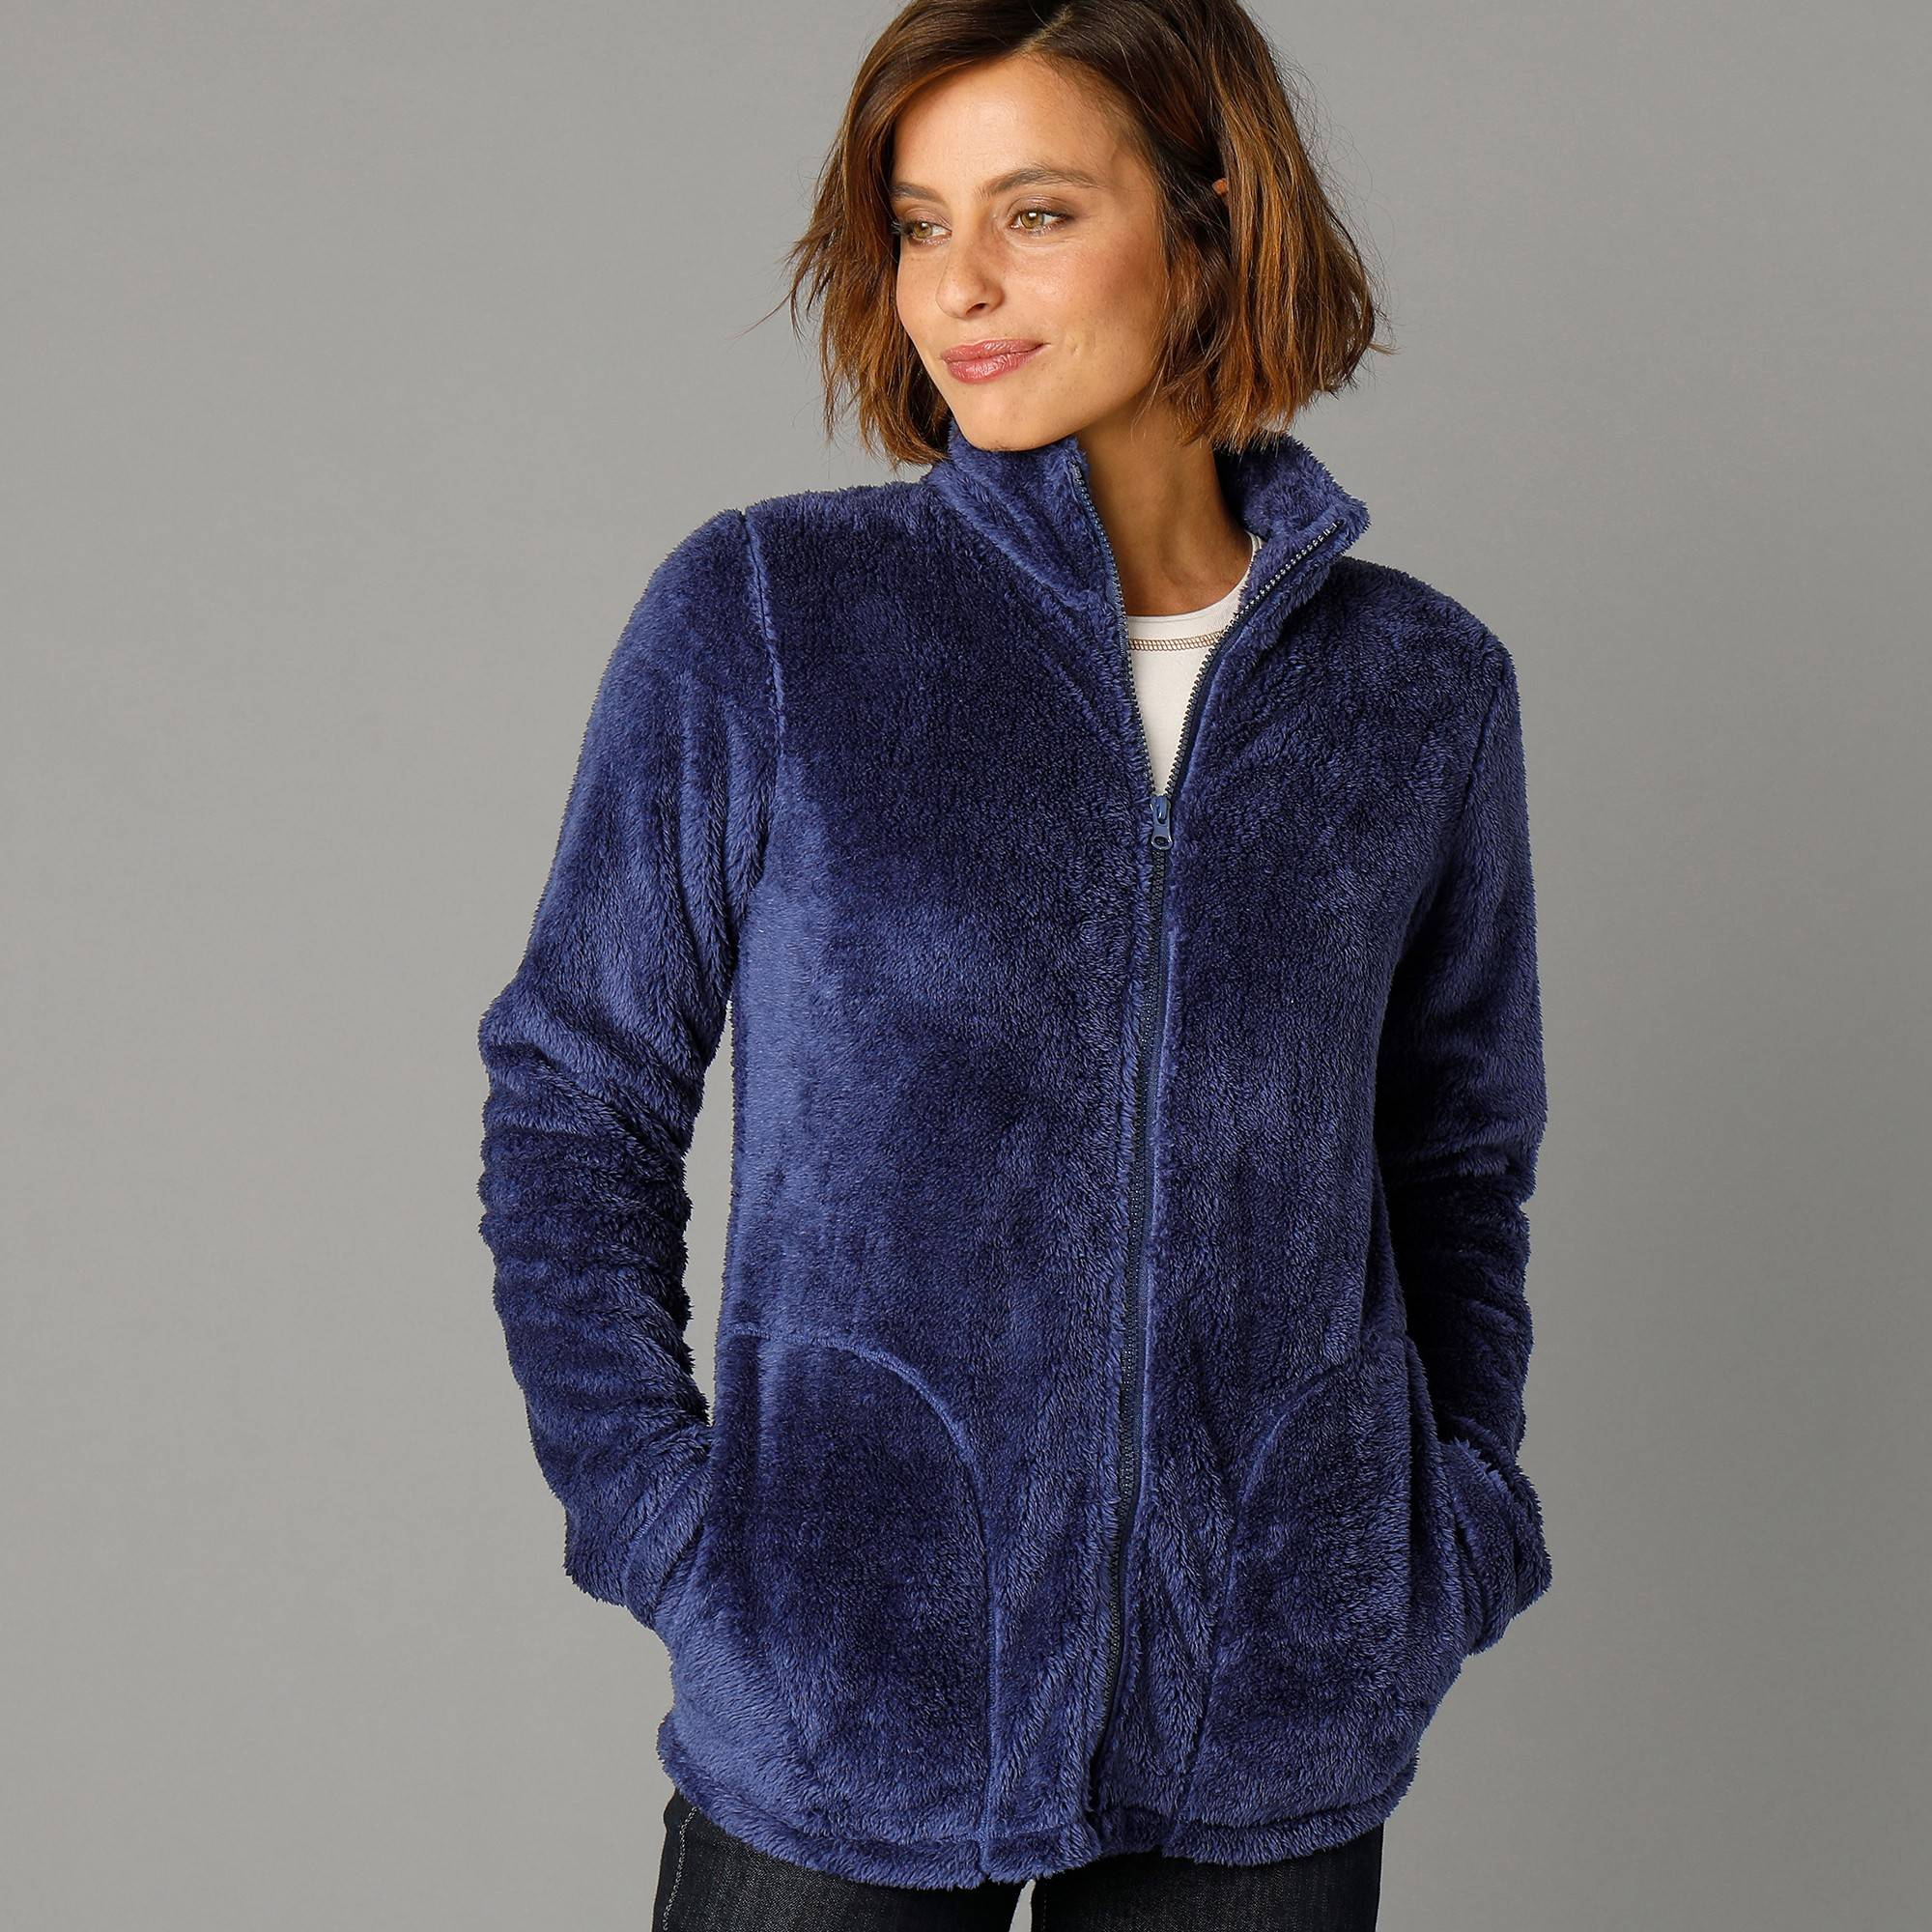 Casual Collection Veste maille peluche - Bleu - Taille : 38,40 - Blancheporte